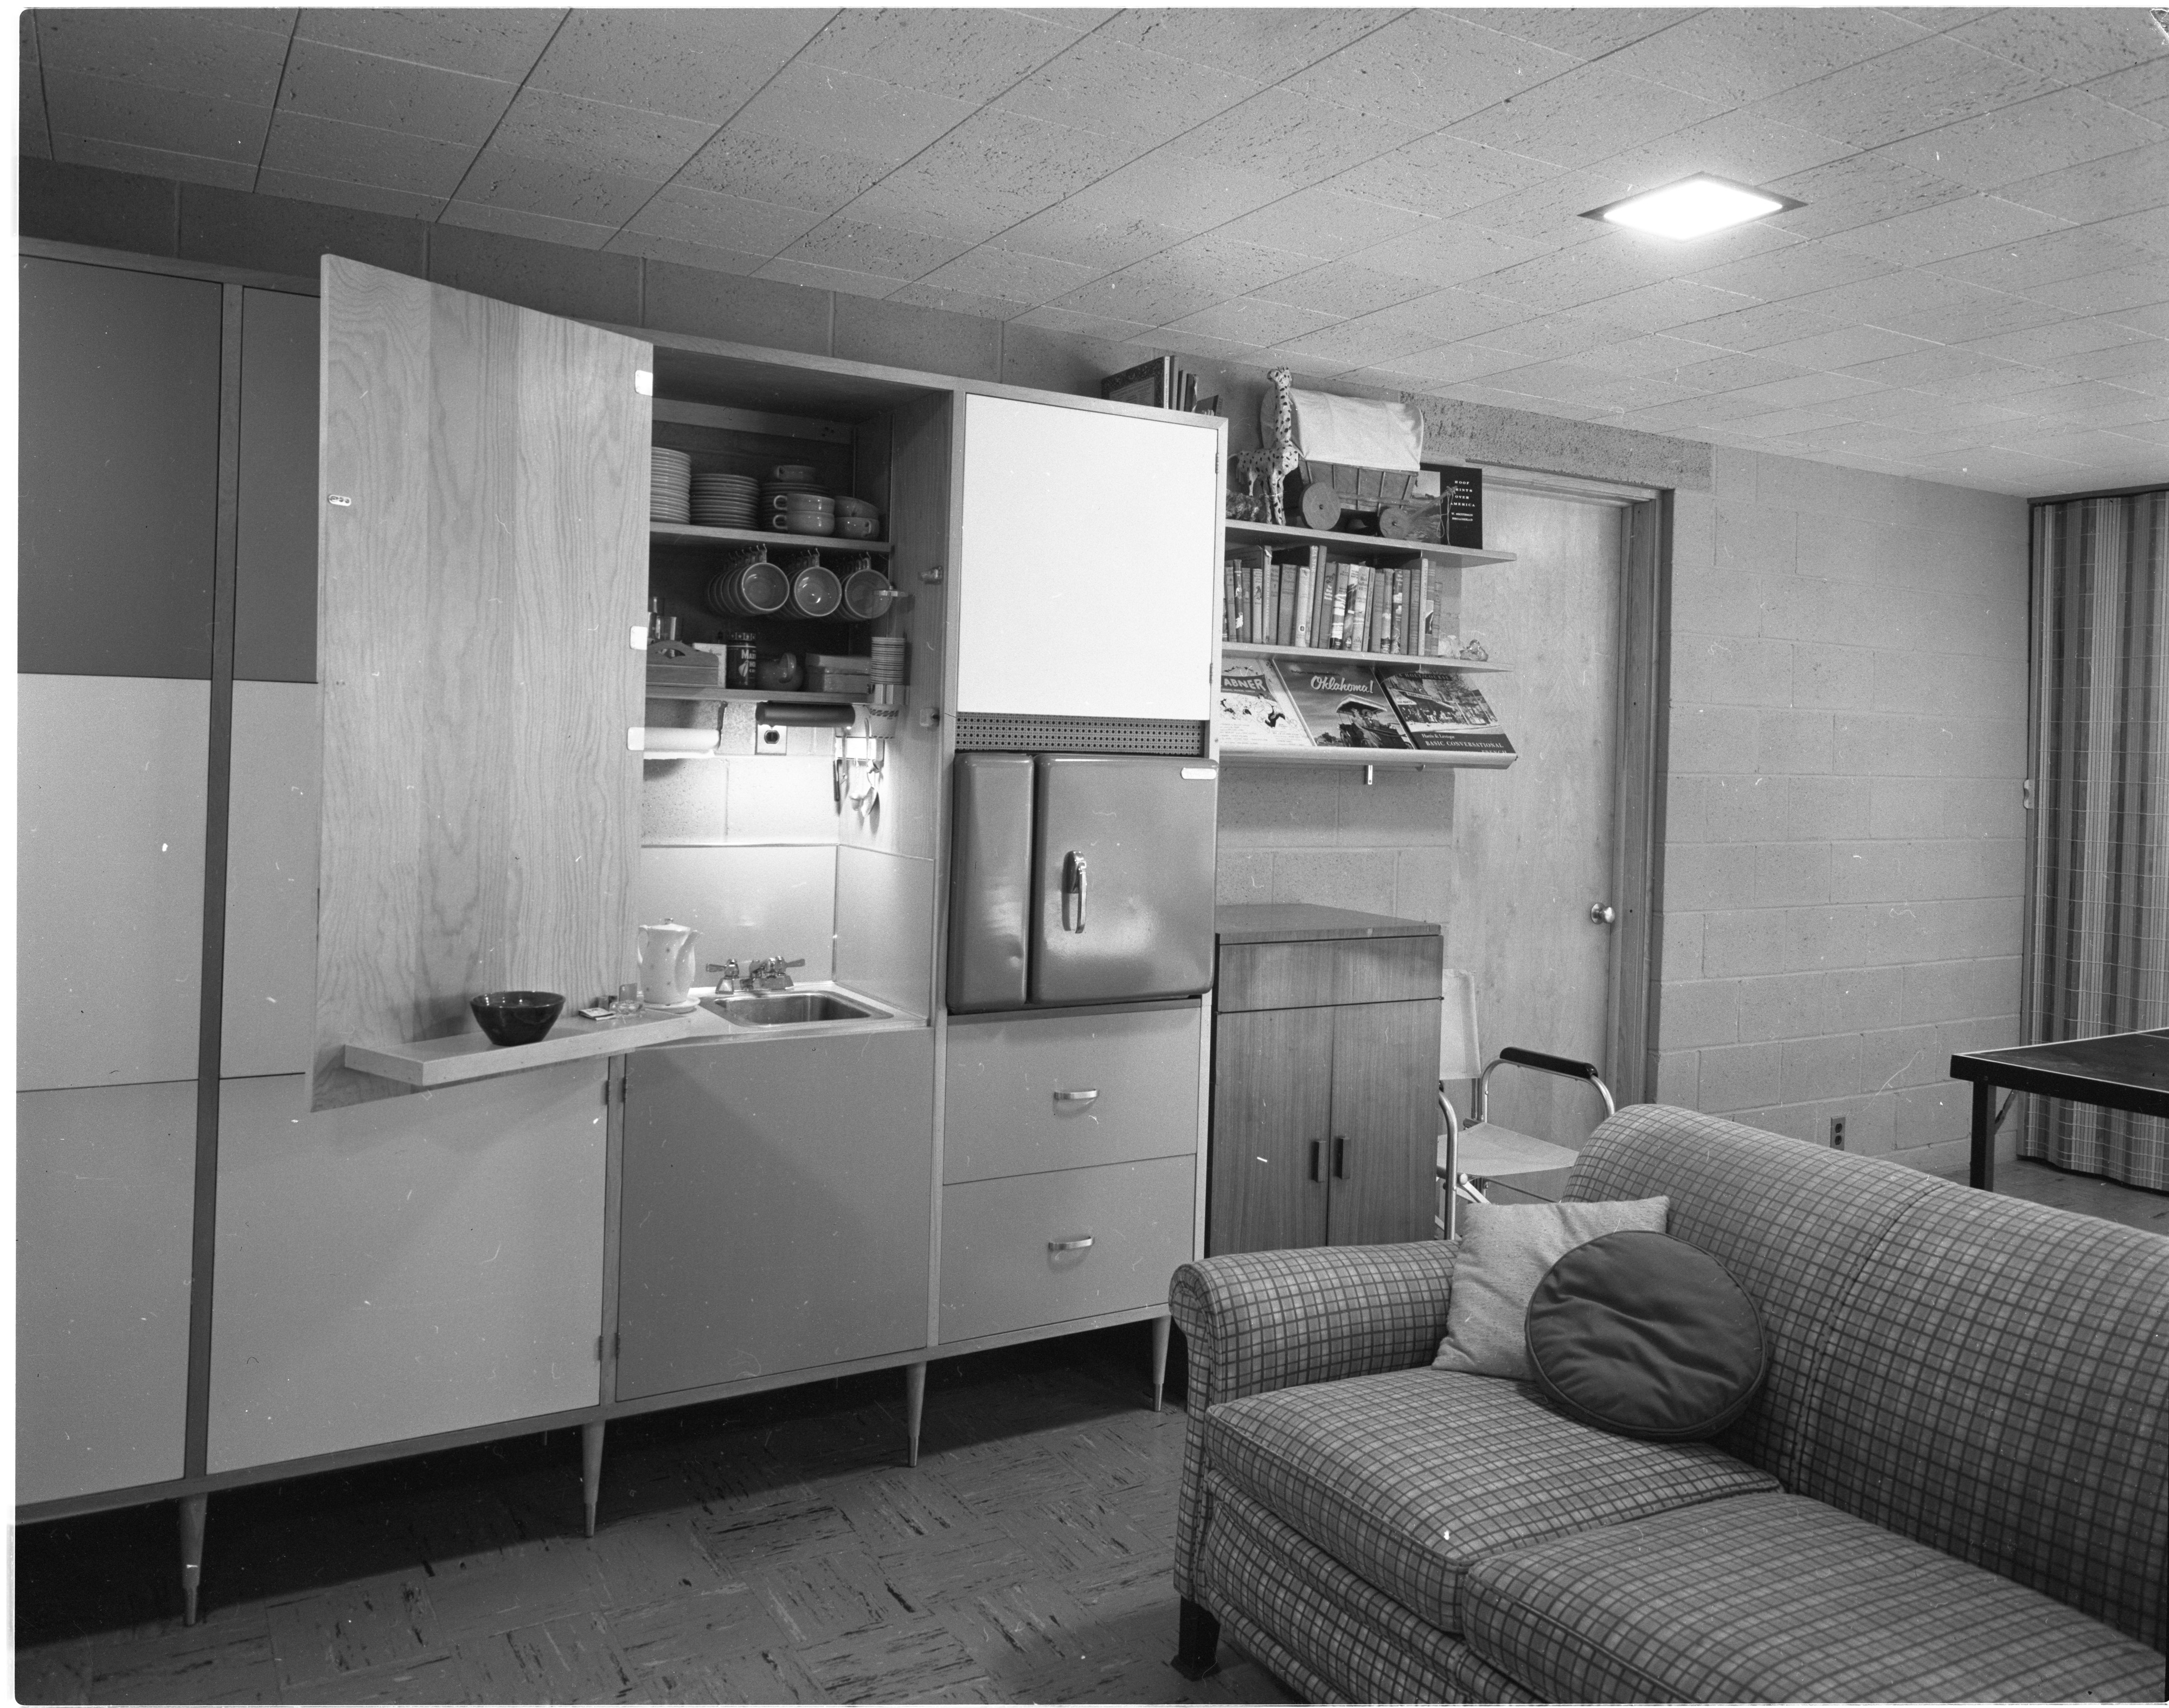 Kitchenette Adds To Usability of Recreation Room In Moore Home, June 1958 image